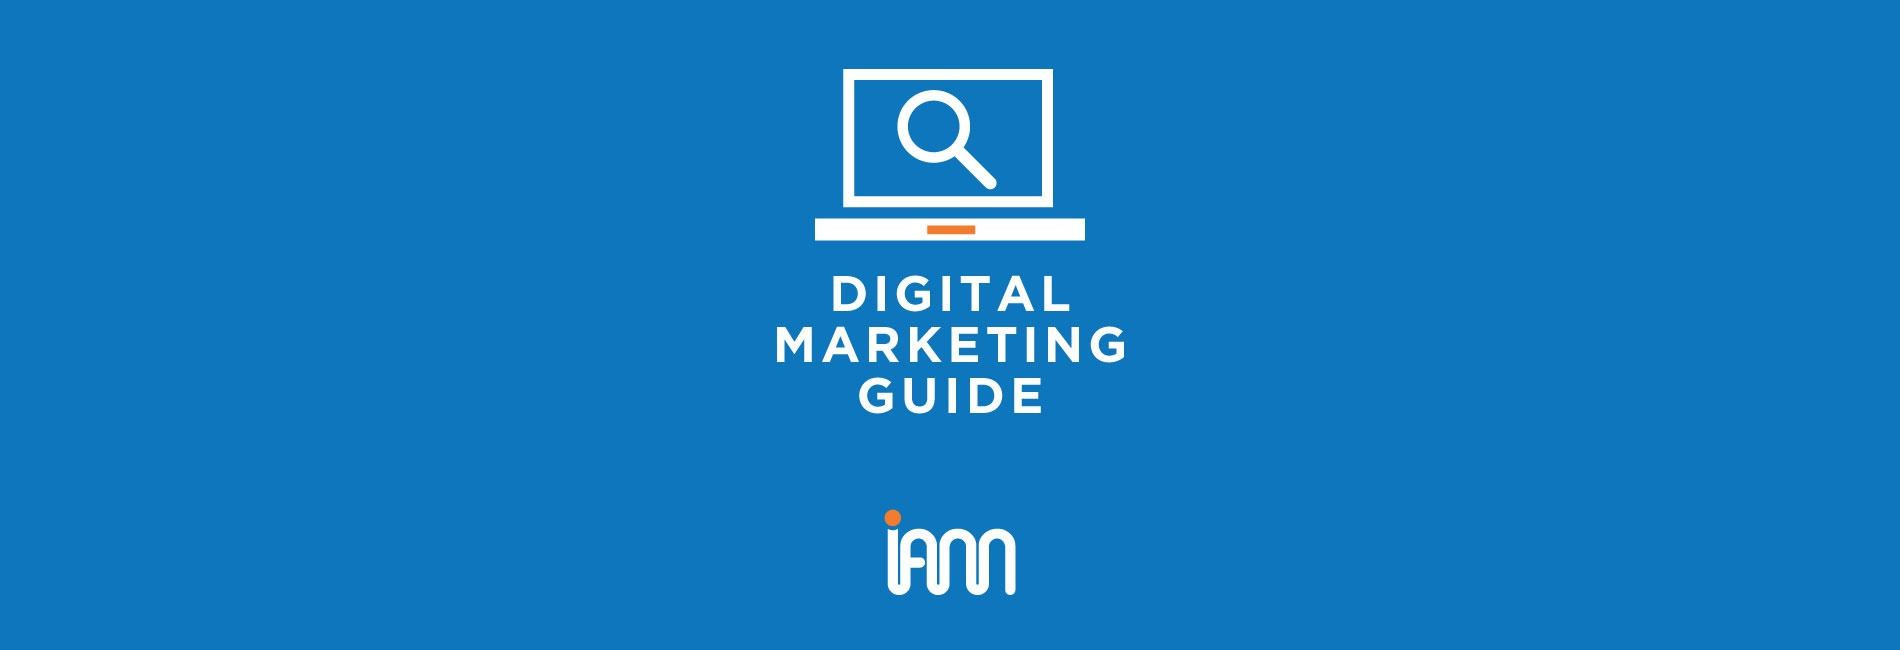 A Digital Marketing Guide for Busy Small Business Owners